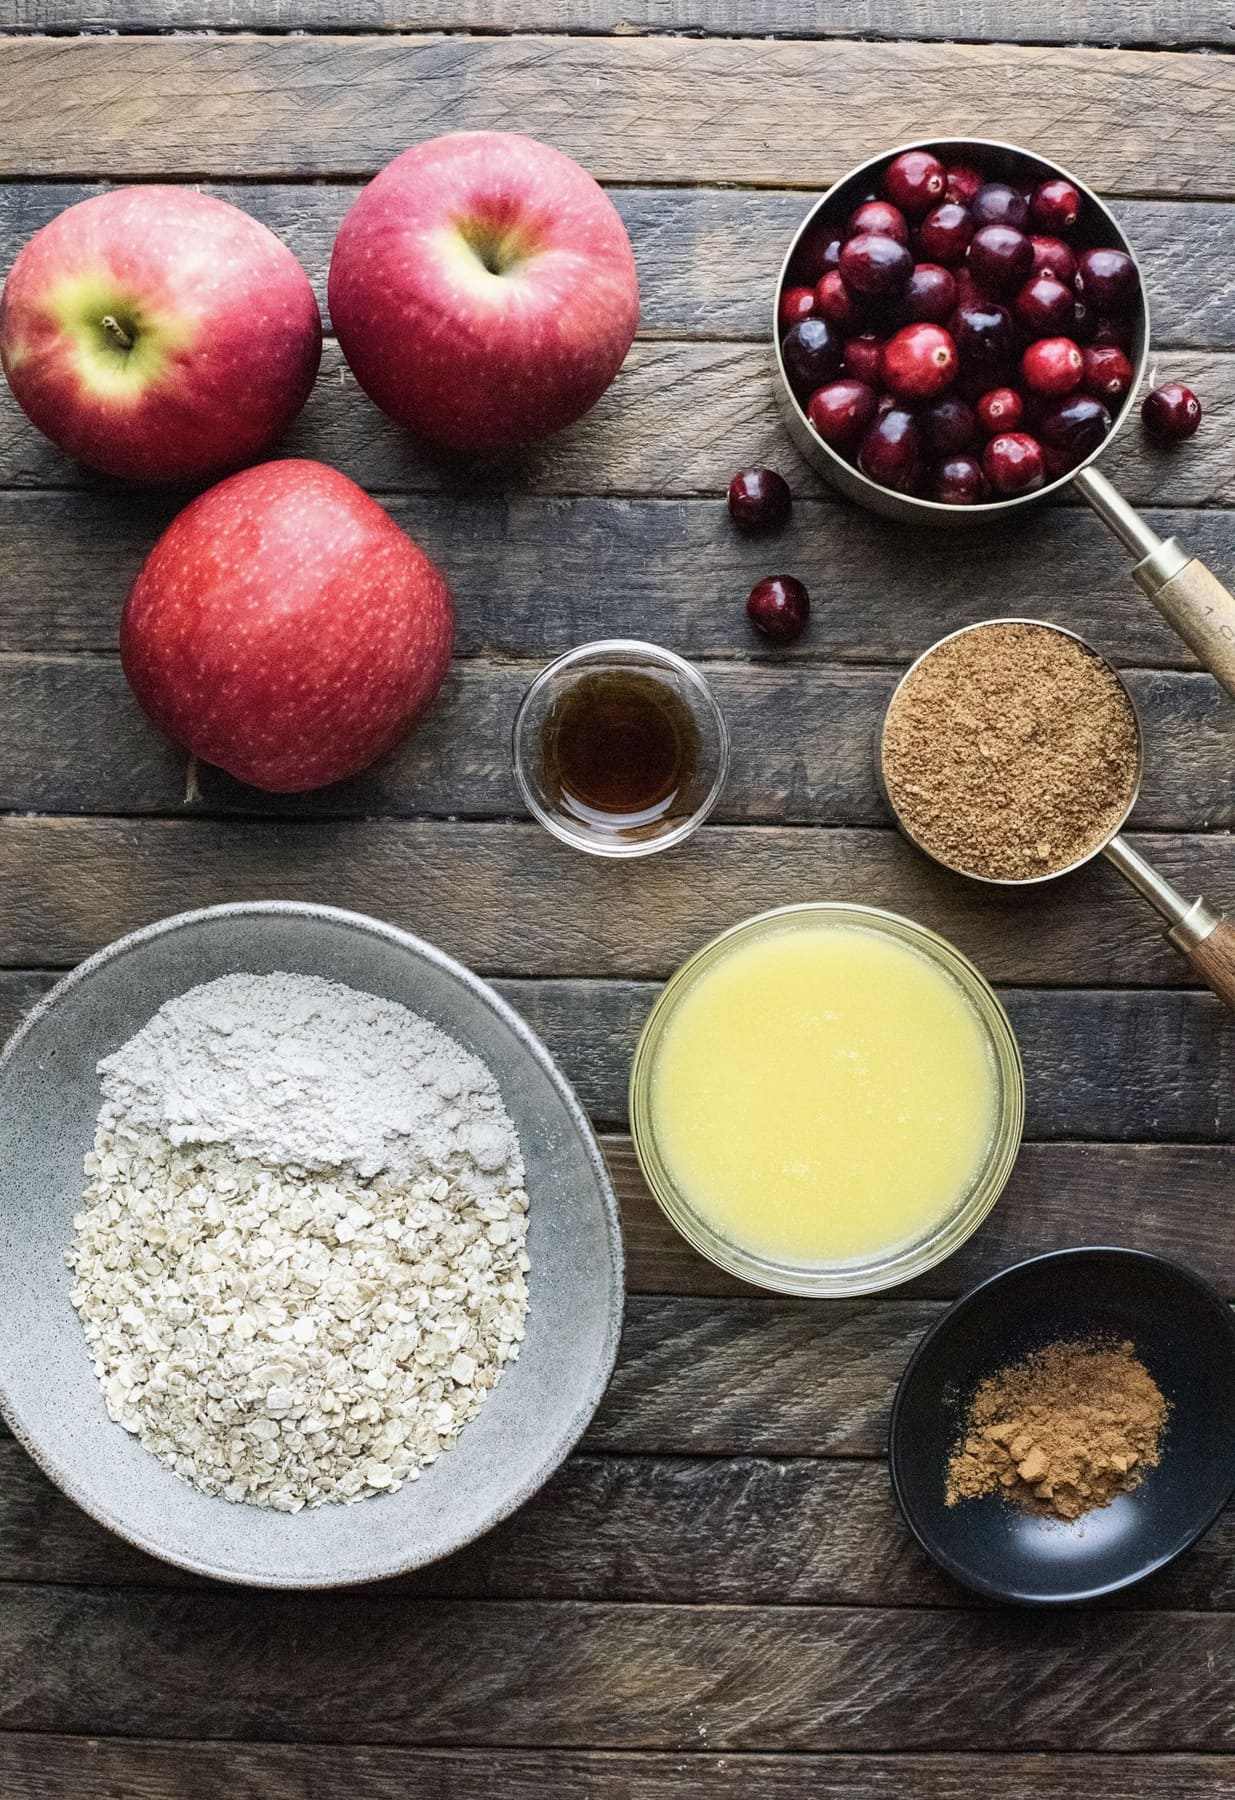 Ingredients for apple cranberry crisp arranged on a brown wooden board.